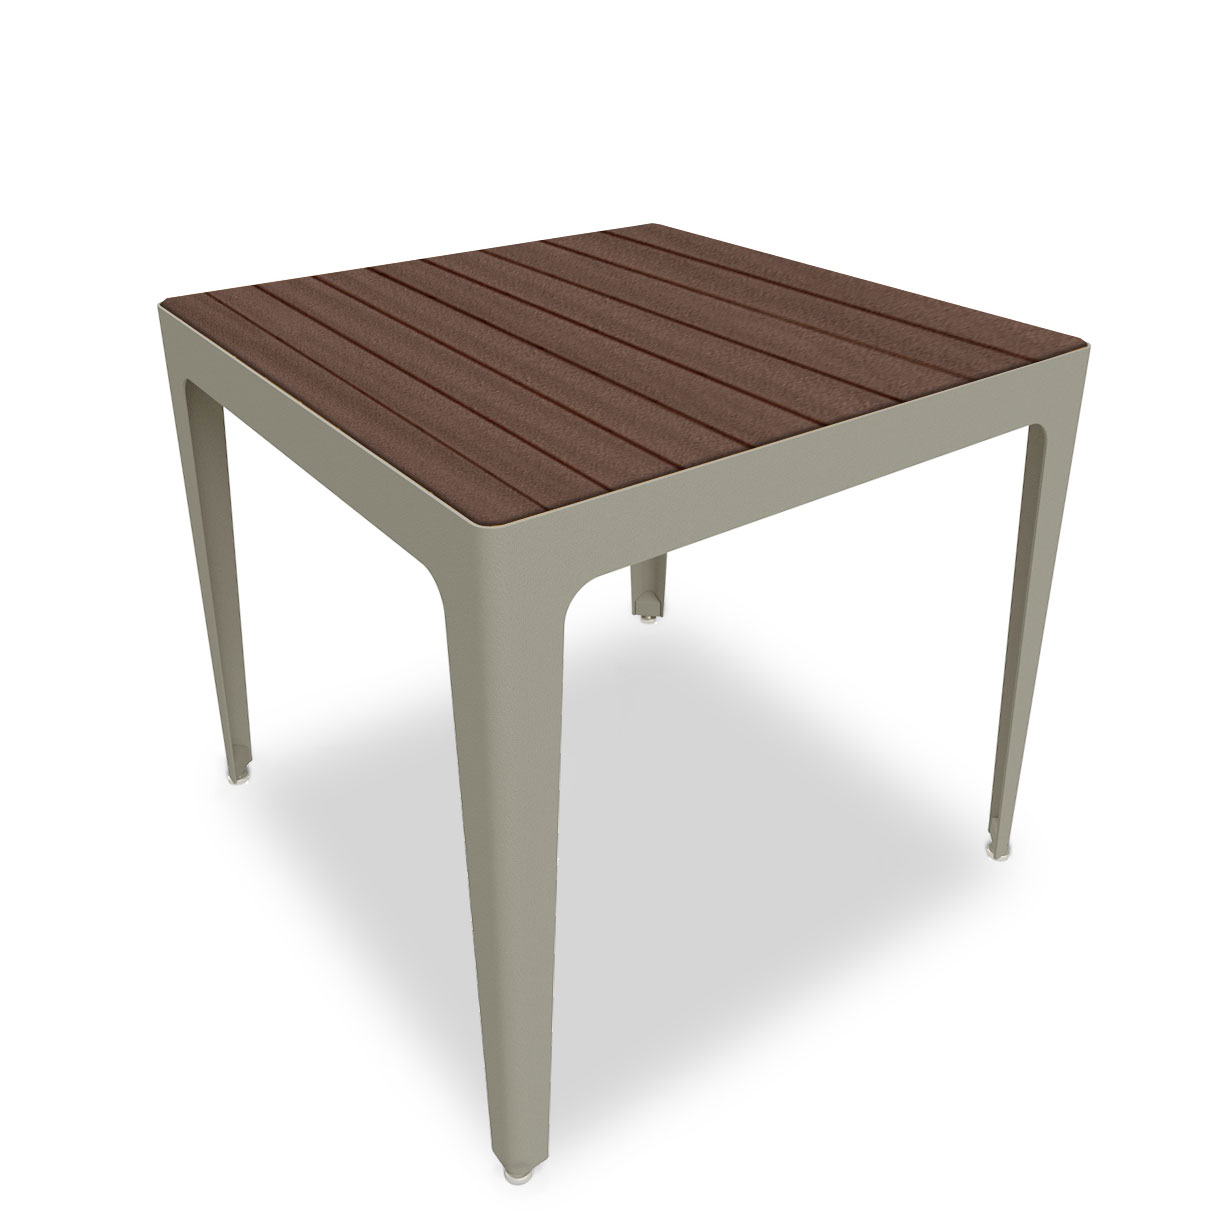 MIX2925R Mixx Collection Square Recycled Plastic Table